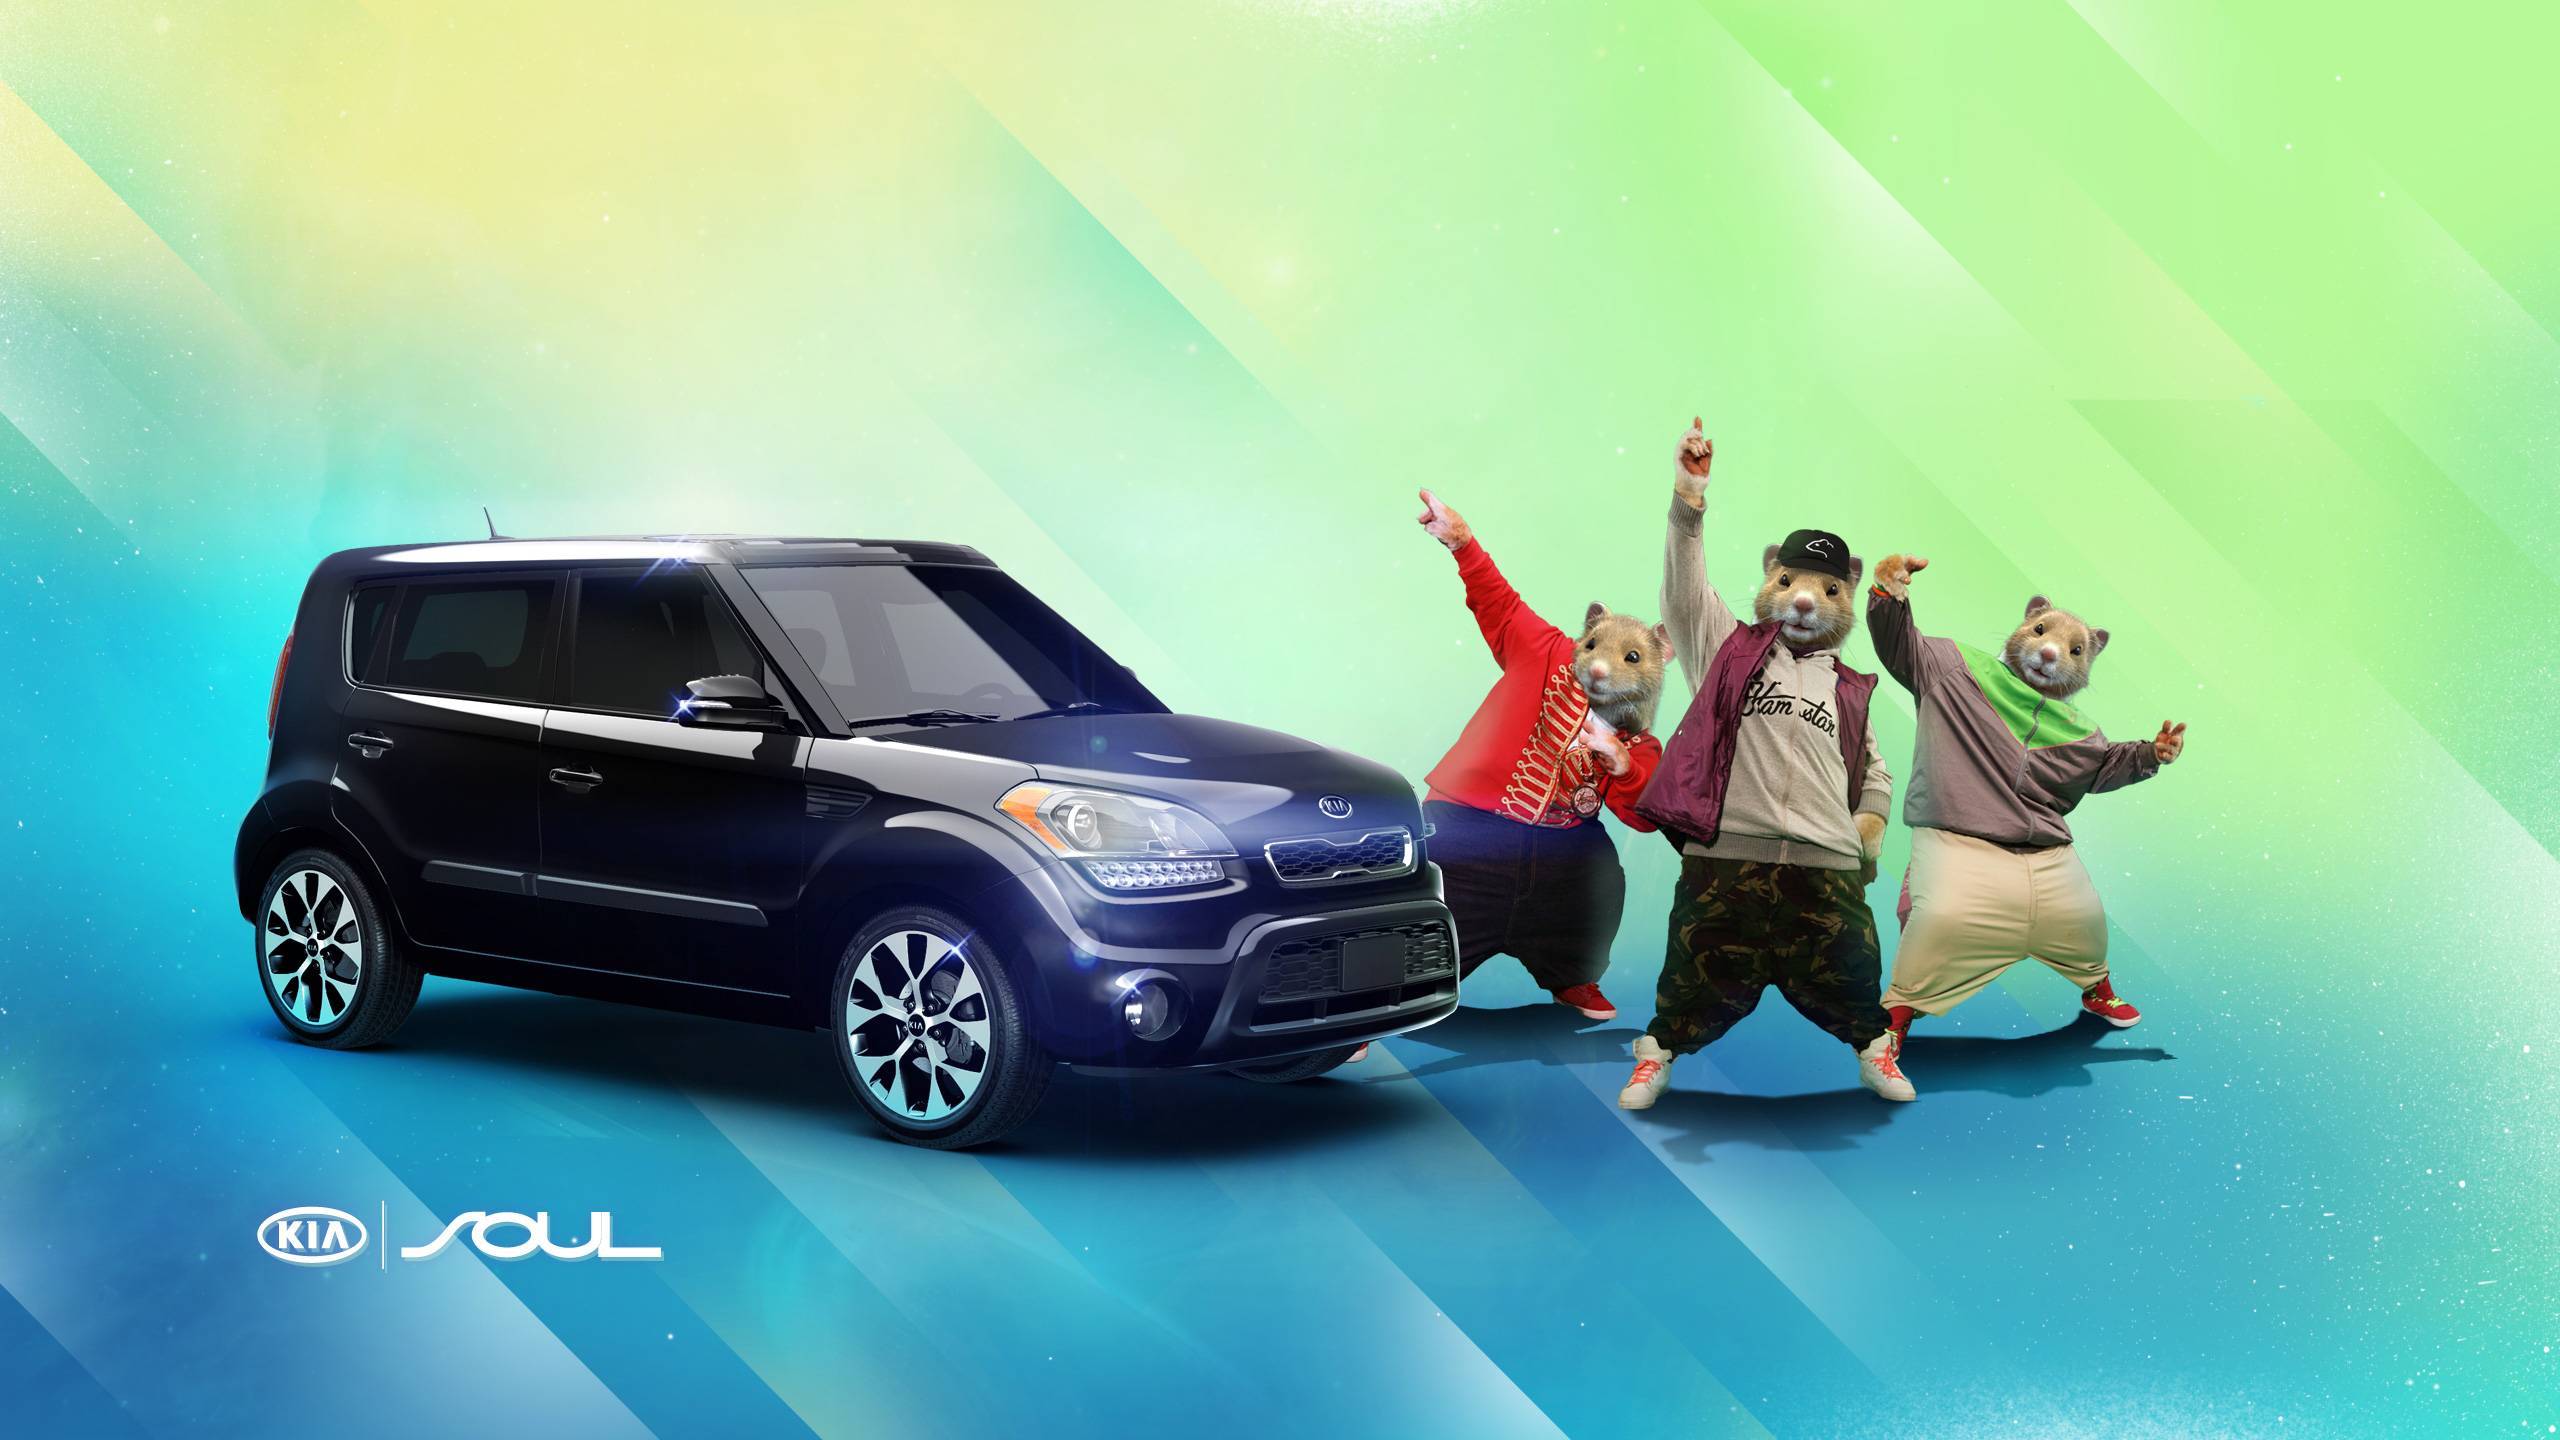 3d Animated Video Wallpapers Kia Soul Hamsters Animated Gifs Nelsdrums